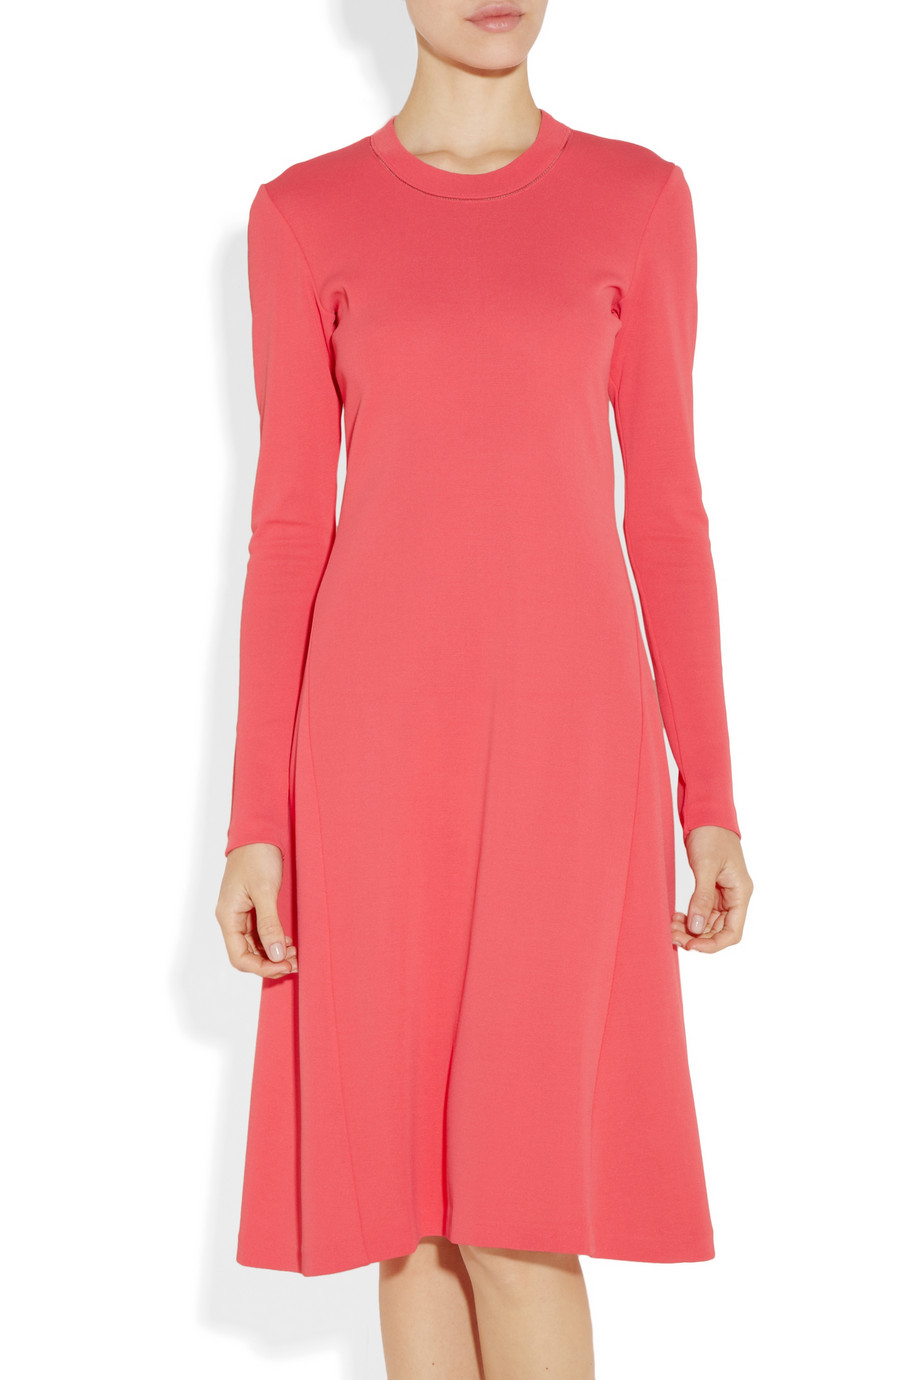 Calvin Klein Collection Felicia jersey dress